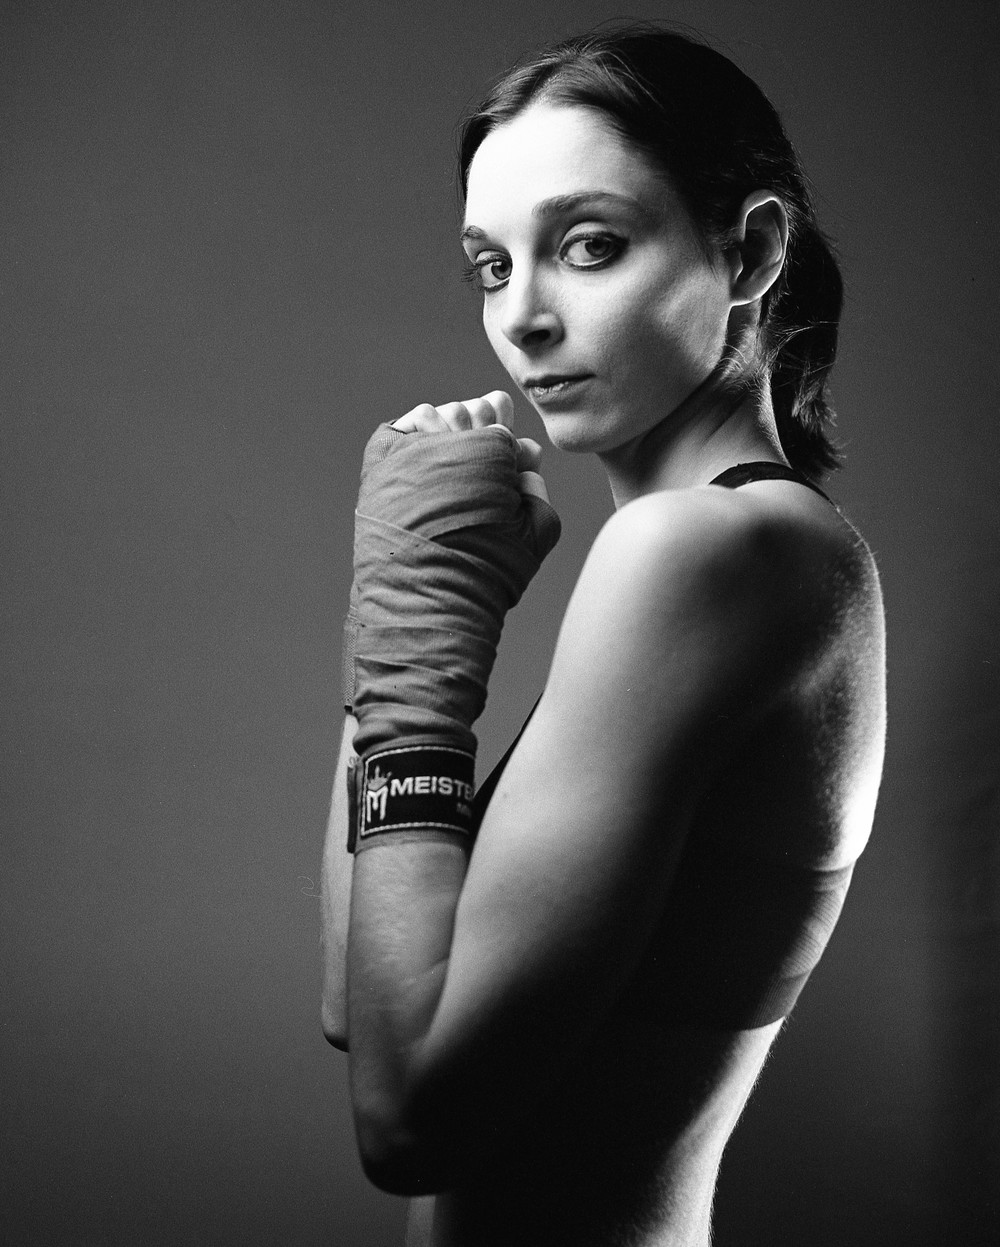 Ruby Falls, MMA Fighter, 2014